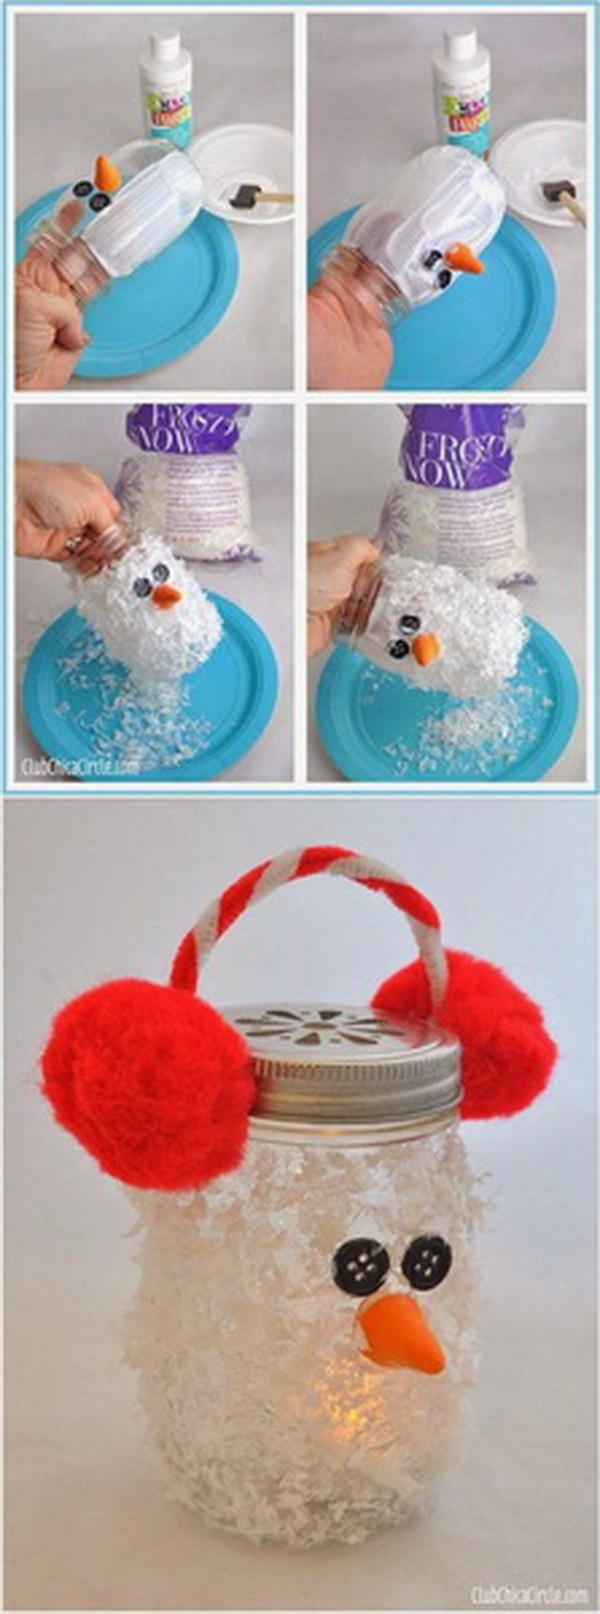 DIY Snowman Mason Jar Luminary: This fuzzy-faced snowman luminary is simply adorable and you can actually have so much fun to make it.